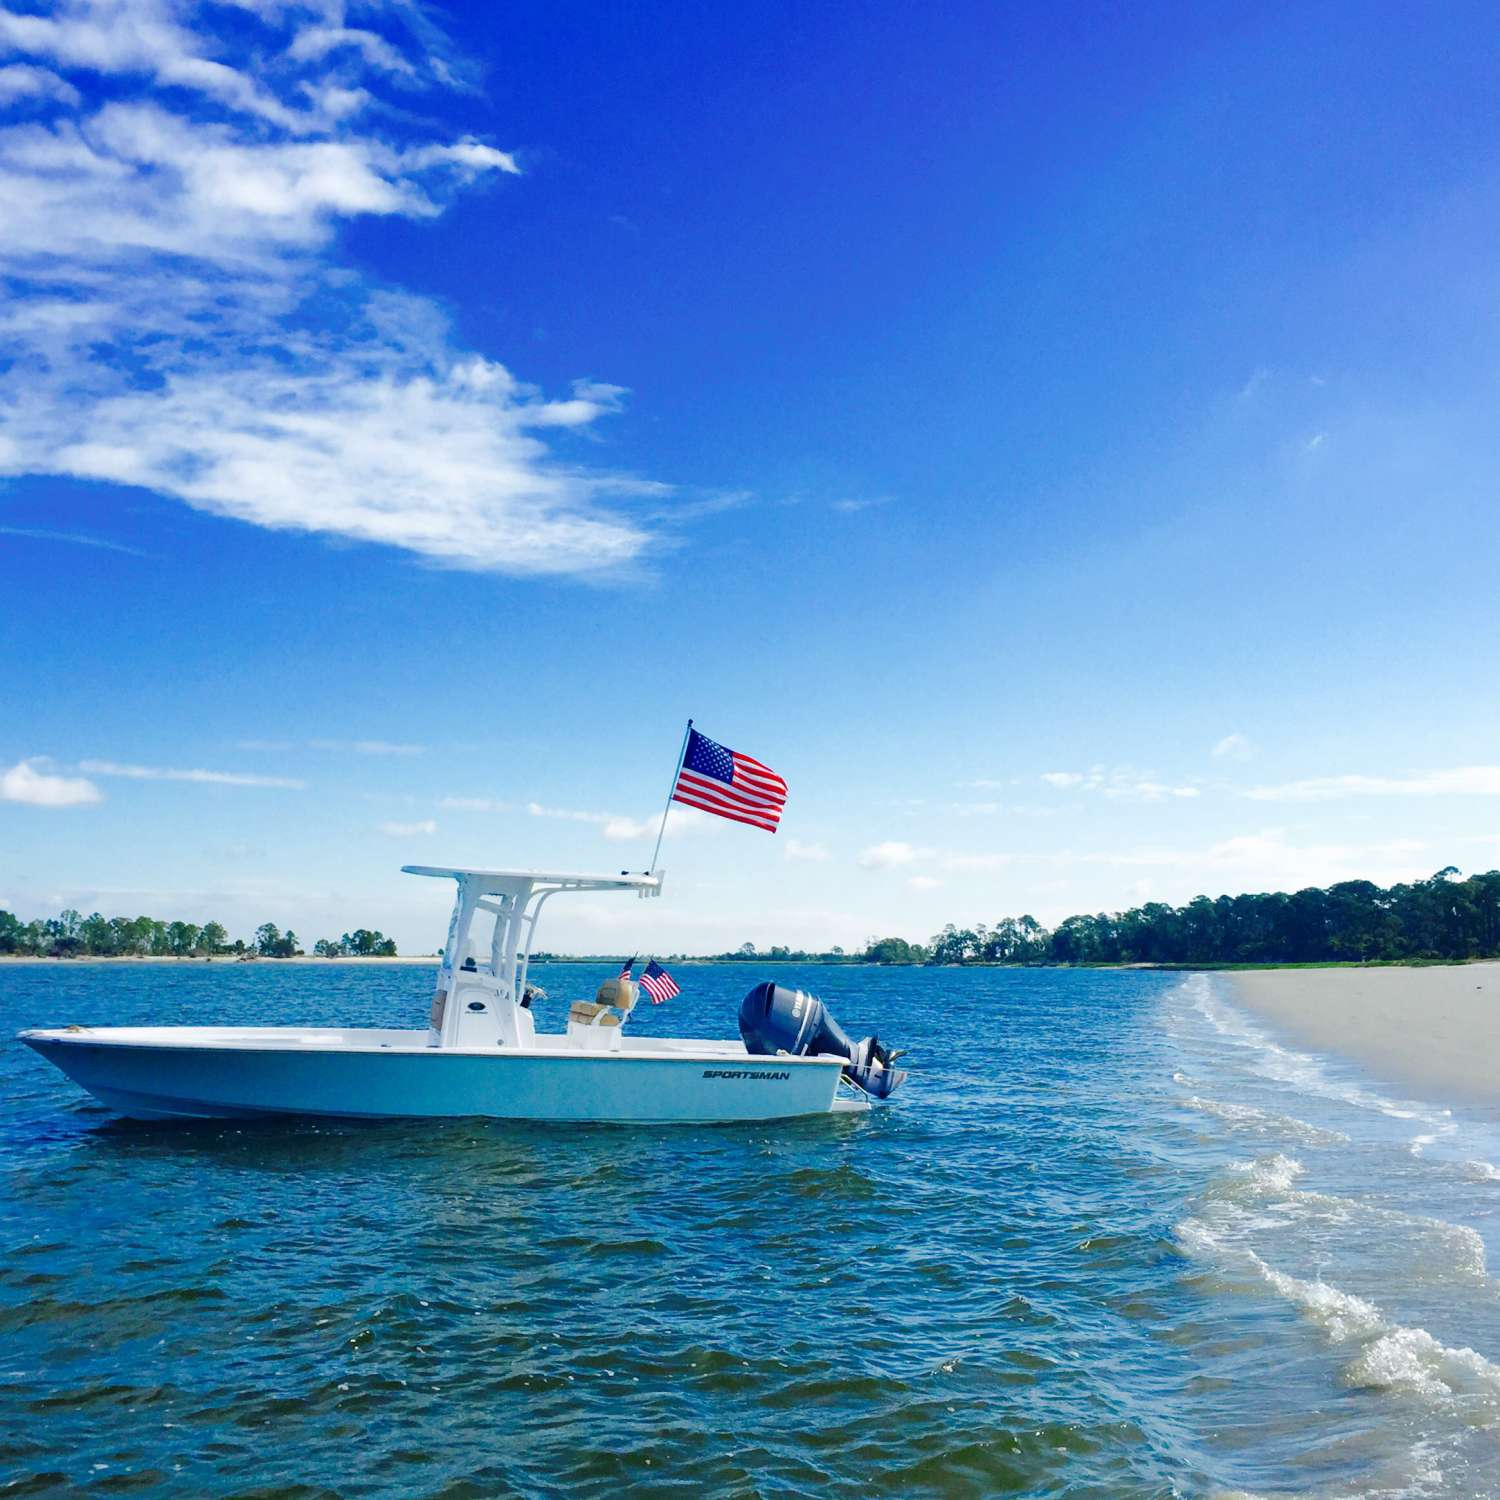 Title: Masters 247 - On board their Sportsman Masters 247 Bay Boat - Location: Savannah, Georgia. Participating in the Photo Contest #SportsmanJune2016